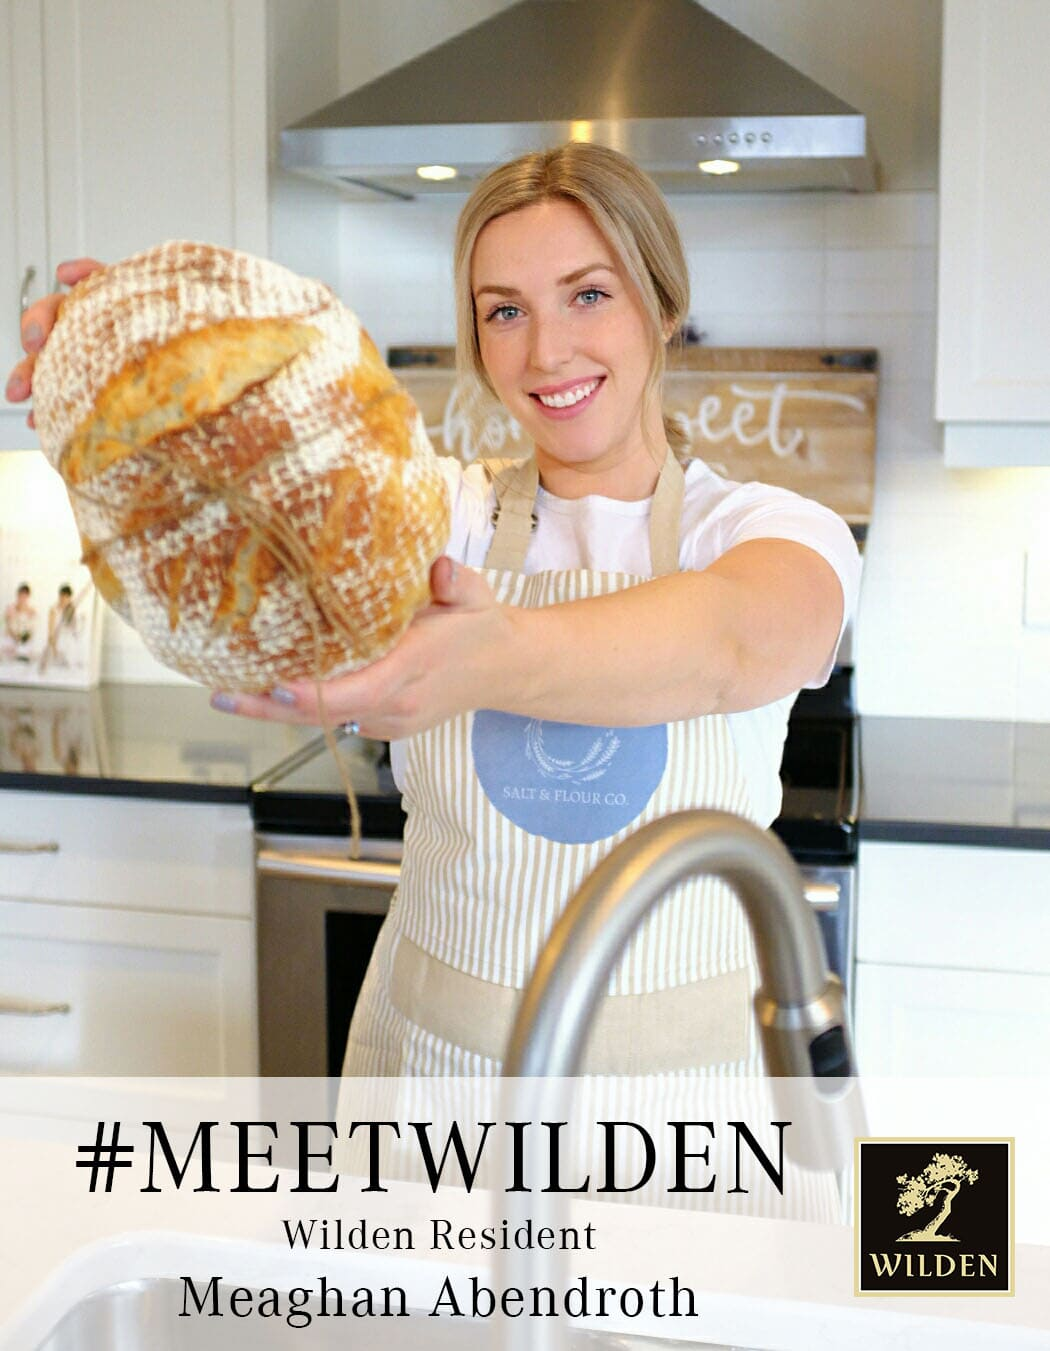 Meaghan Abendroth holding up organic sourdough bread image